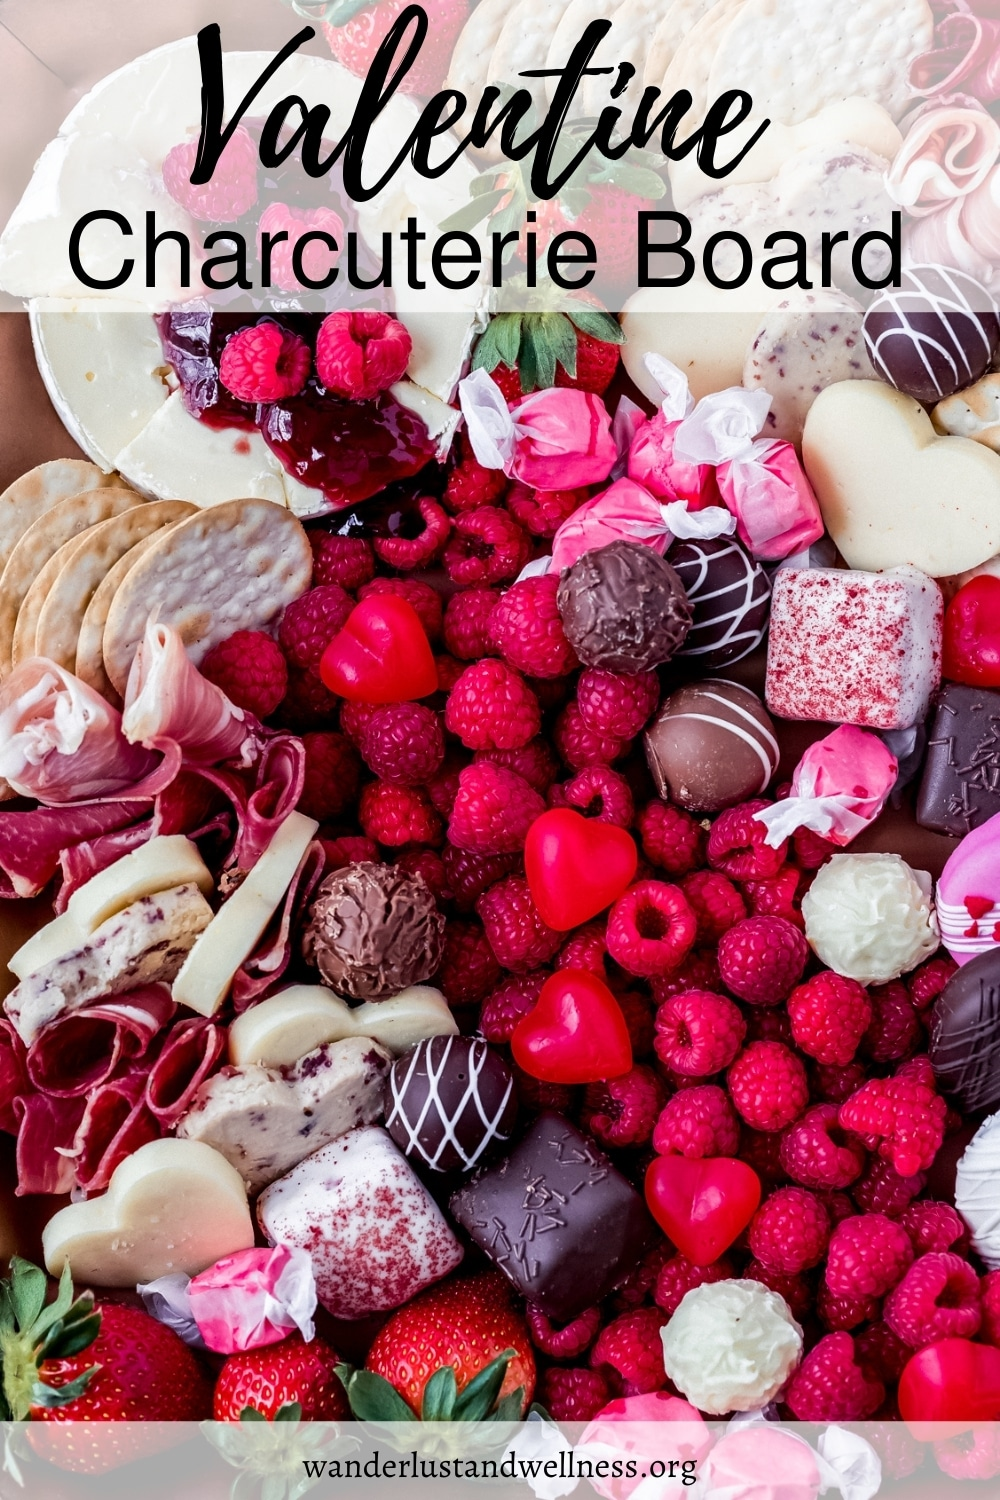 a valentine's day charcuterie board filled with savory meats and cheese and sweet desserts